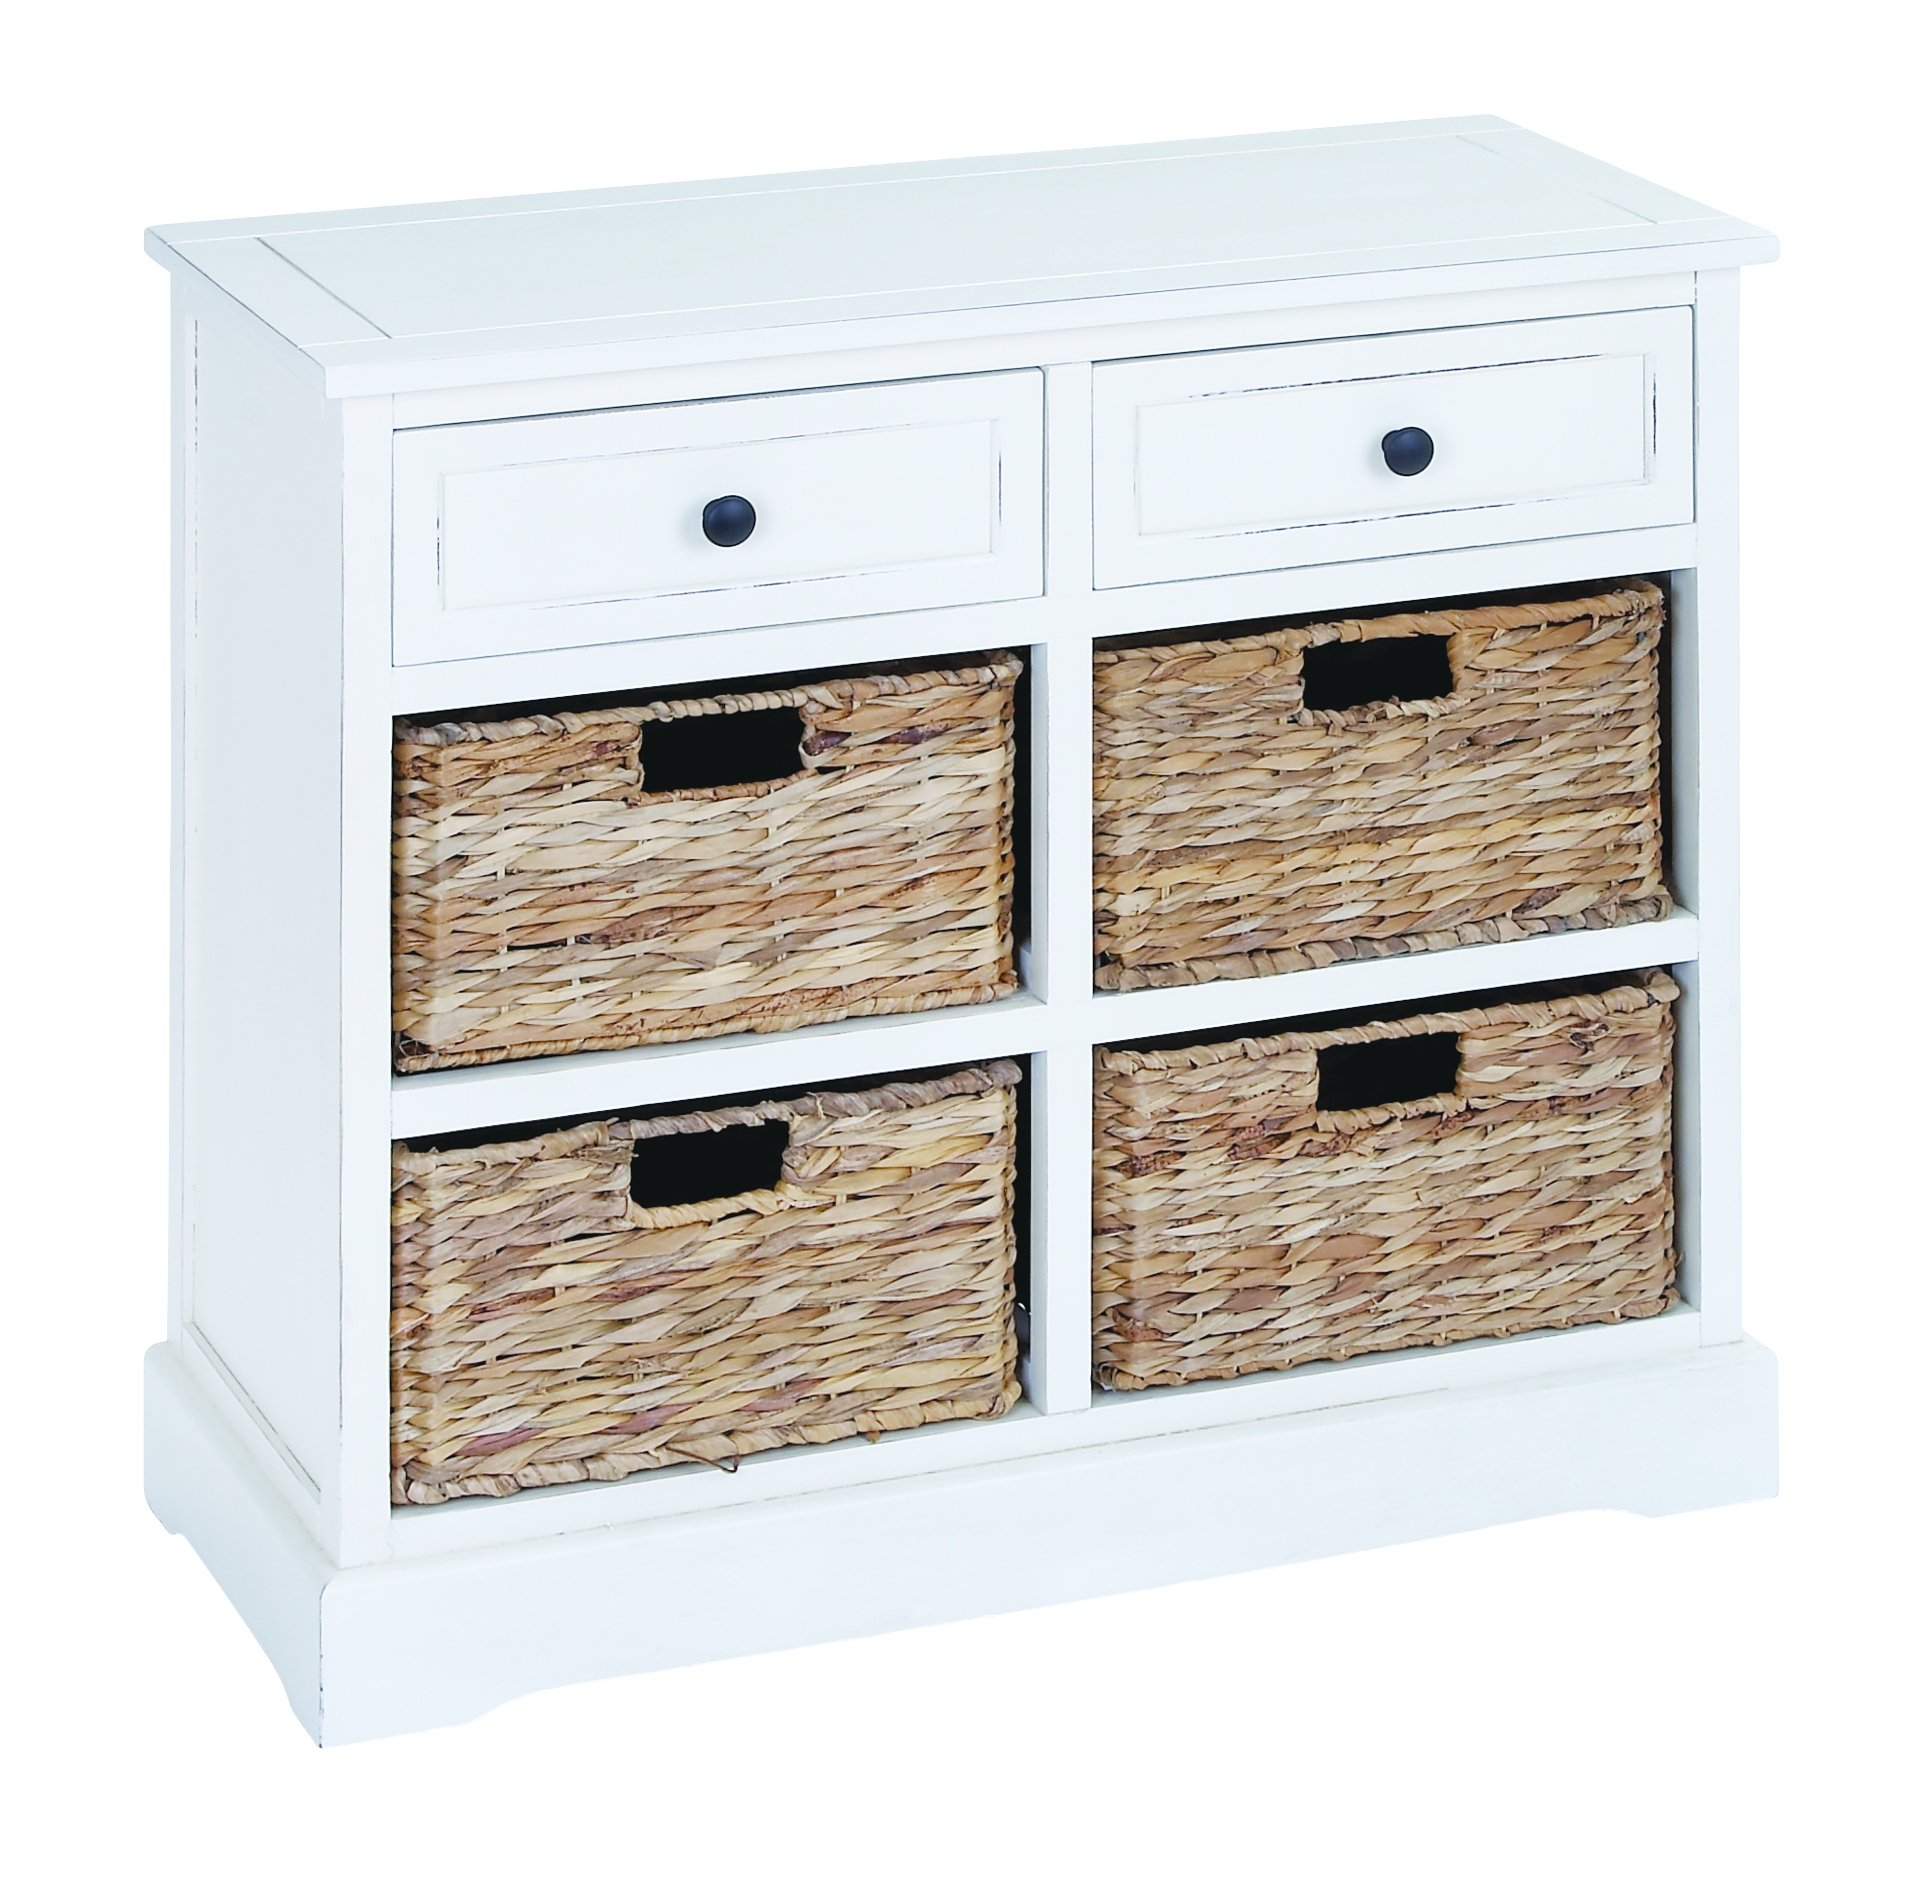 Benzara 96191 Basket Cabinet with Fine Detailing in Exclusive White Color